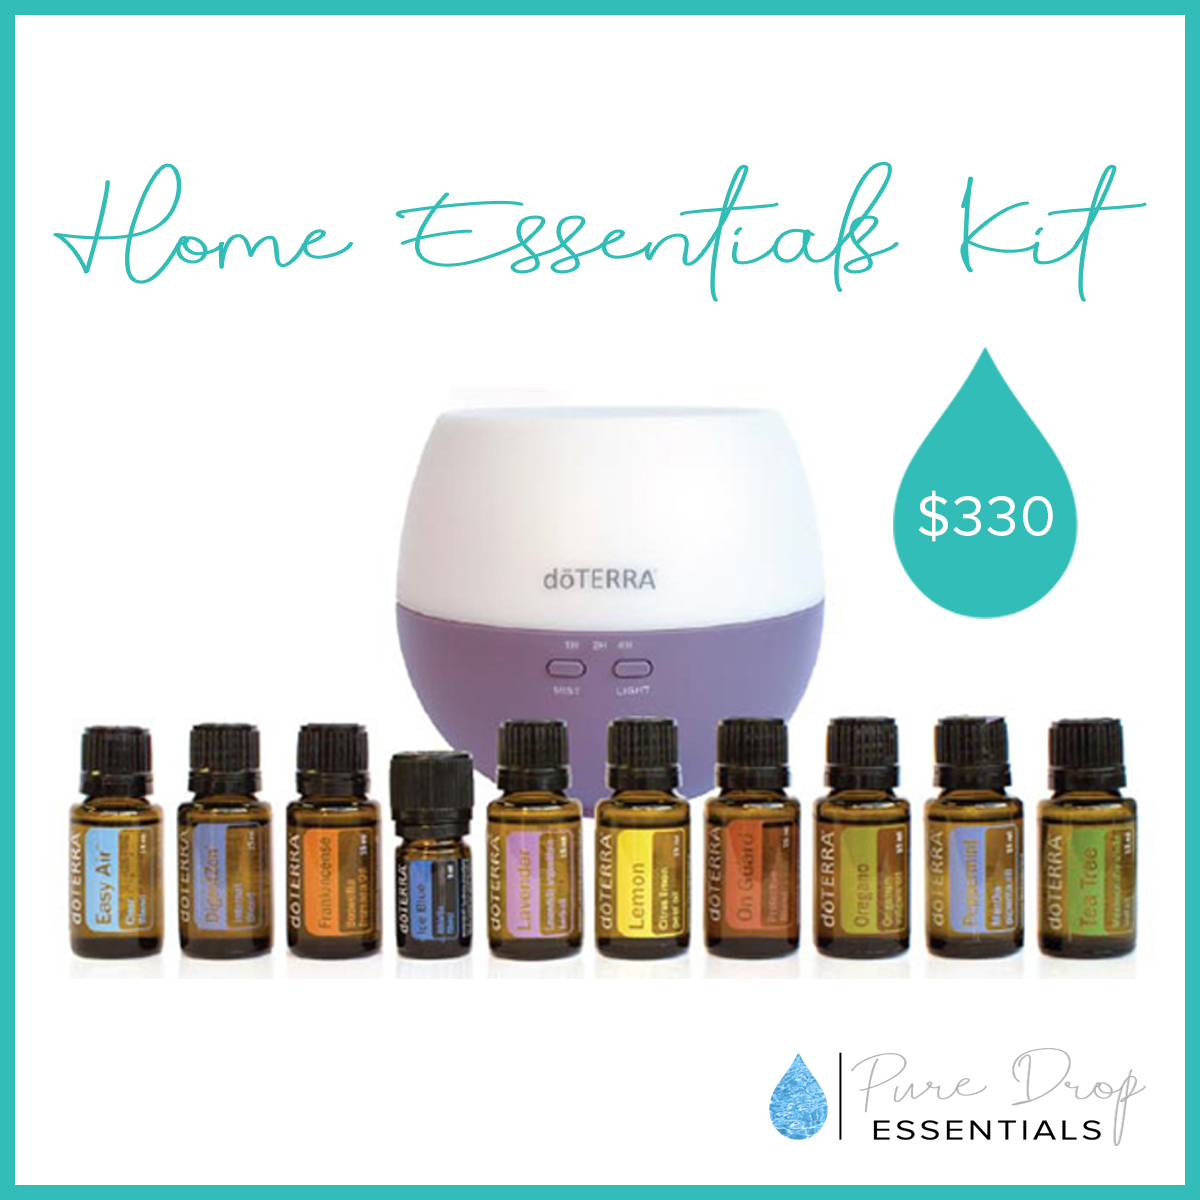 doTERRA's home essentials kit is the most popular starter kit. It contains the 10 most popular doTERRA essential oils in 15ml bottles, along with a bonus petal diffuser